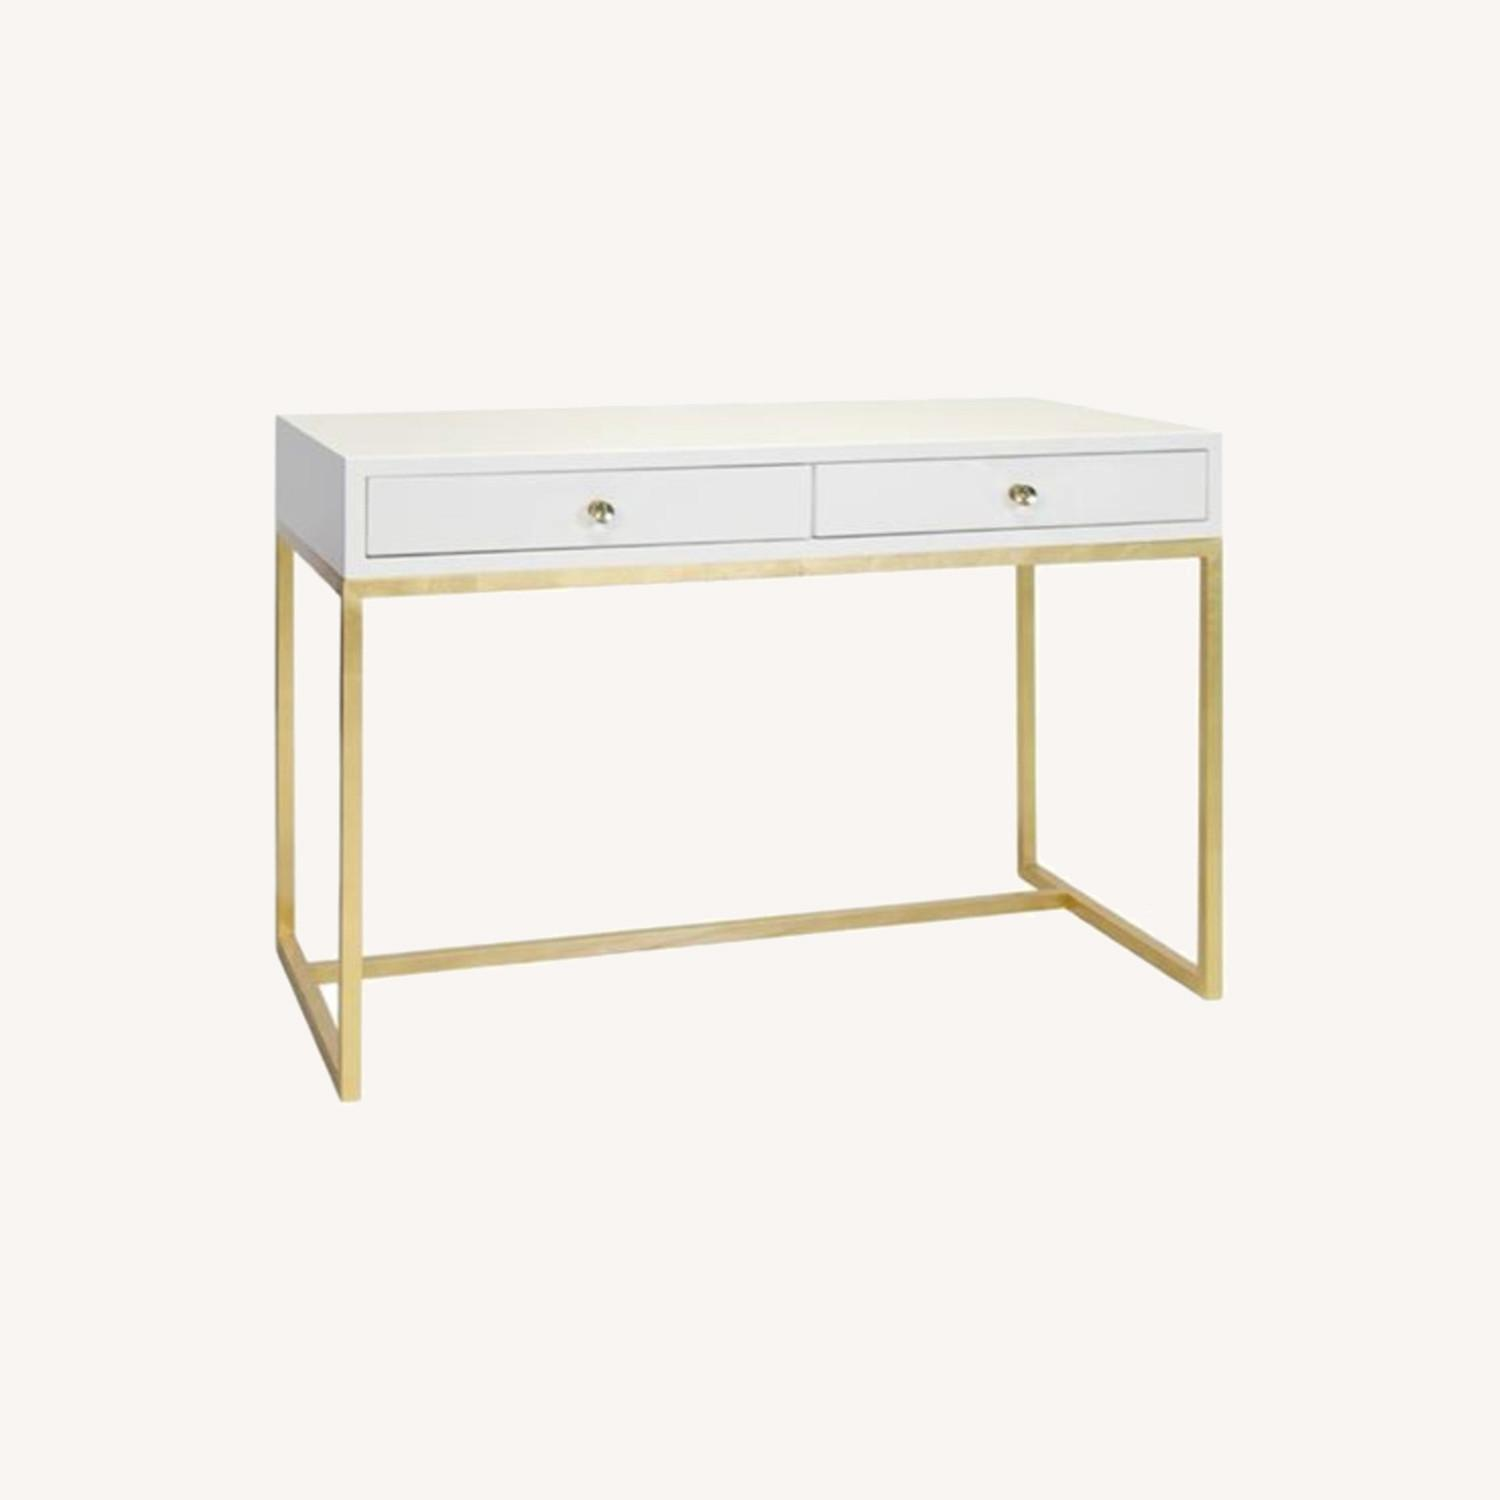 Kathy Kuo Cami Hollywood Regency White Lacquered Gold Desk - image-0